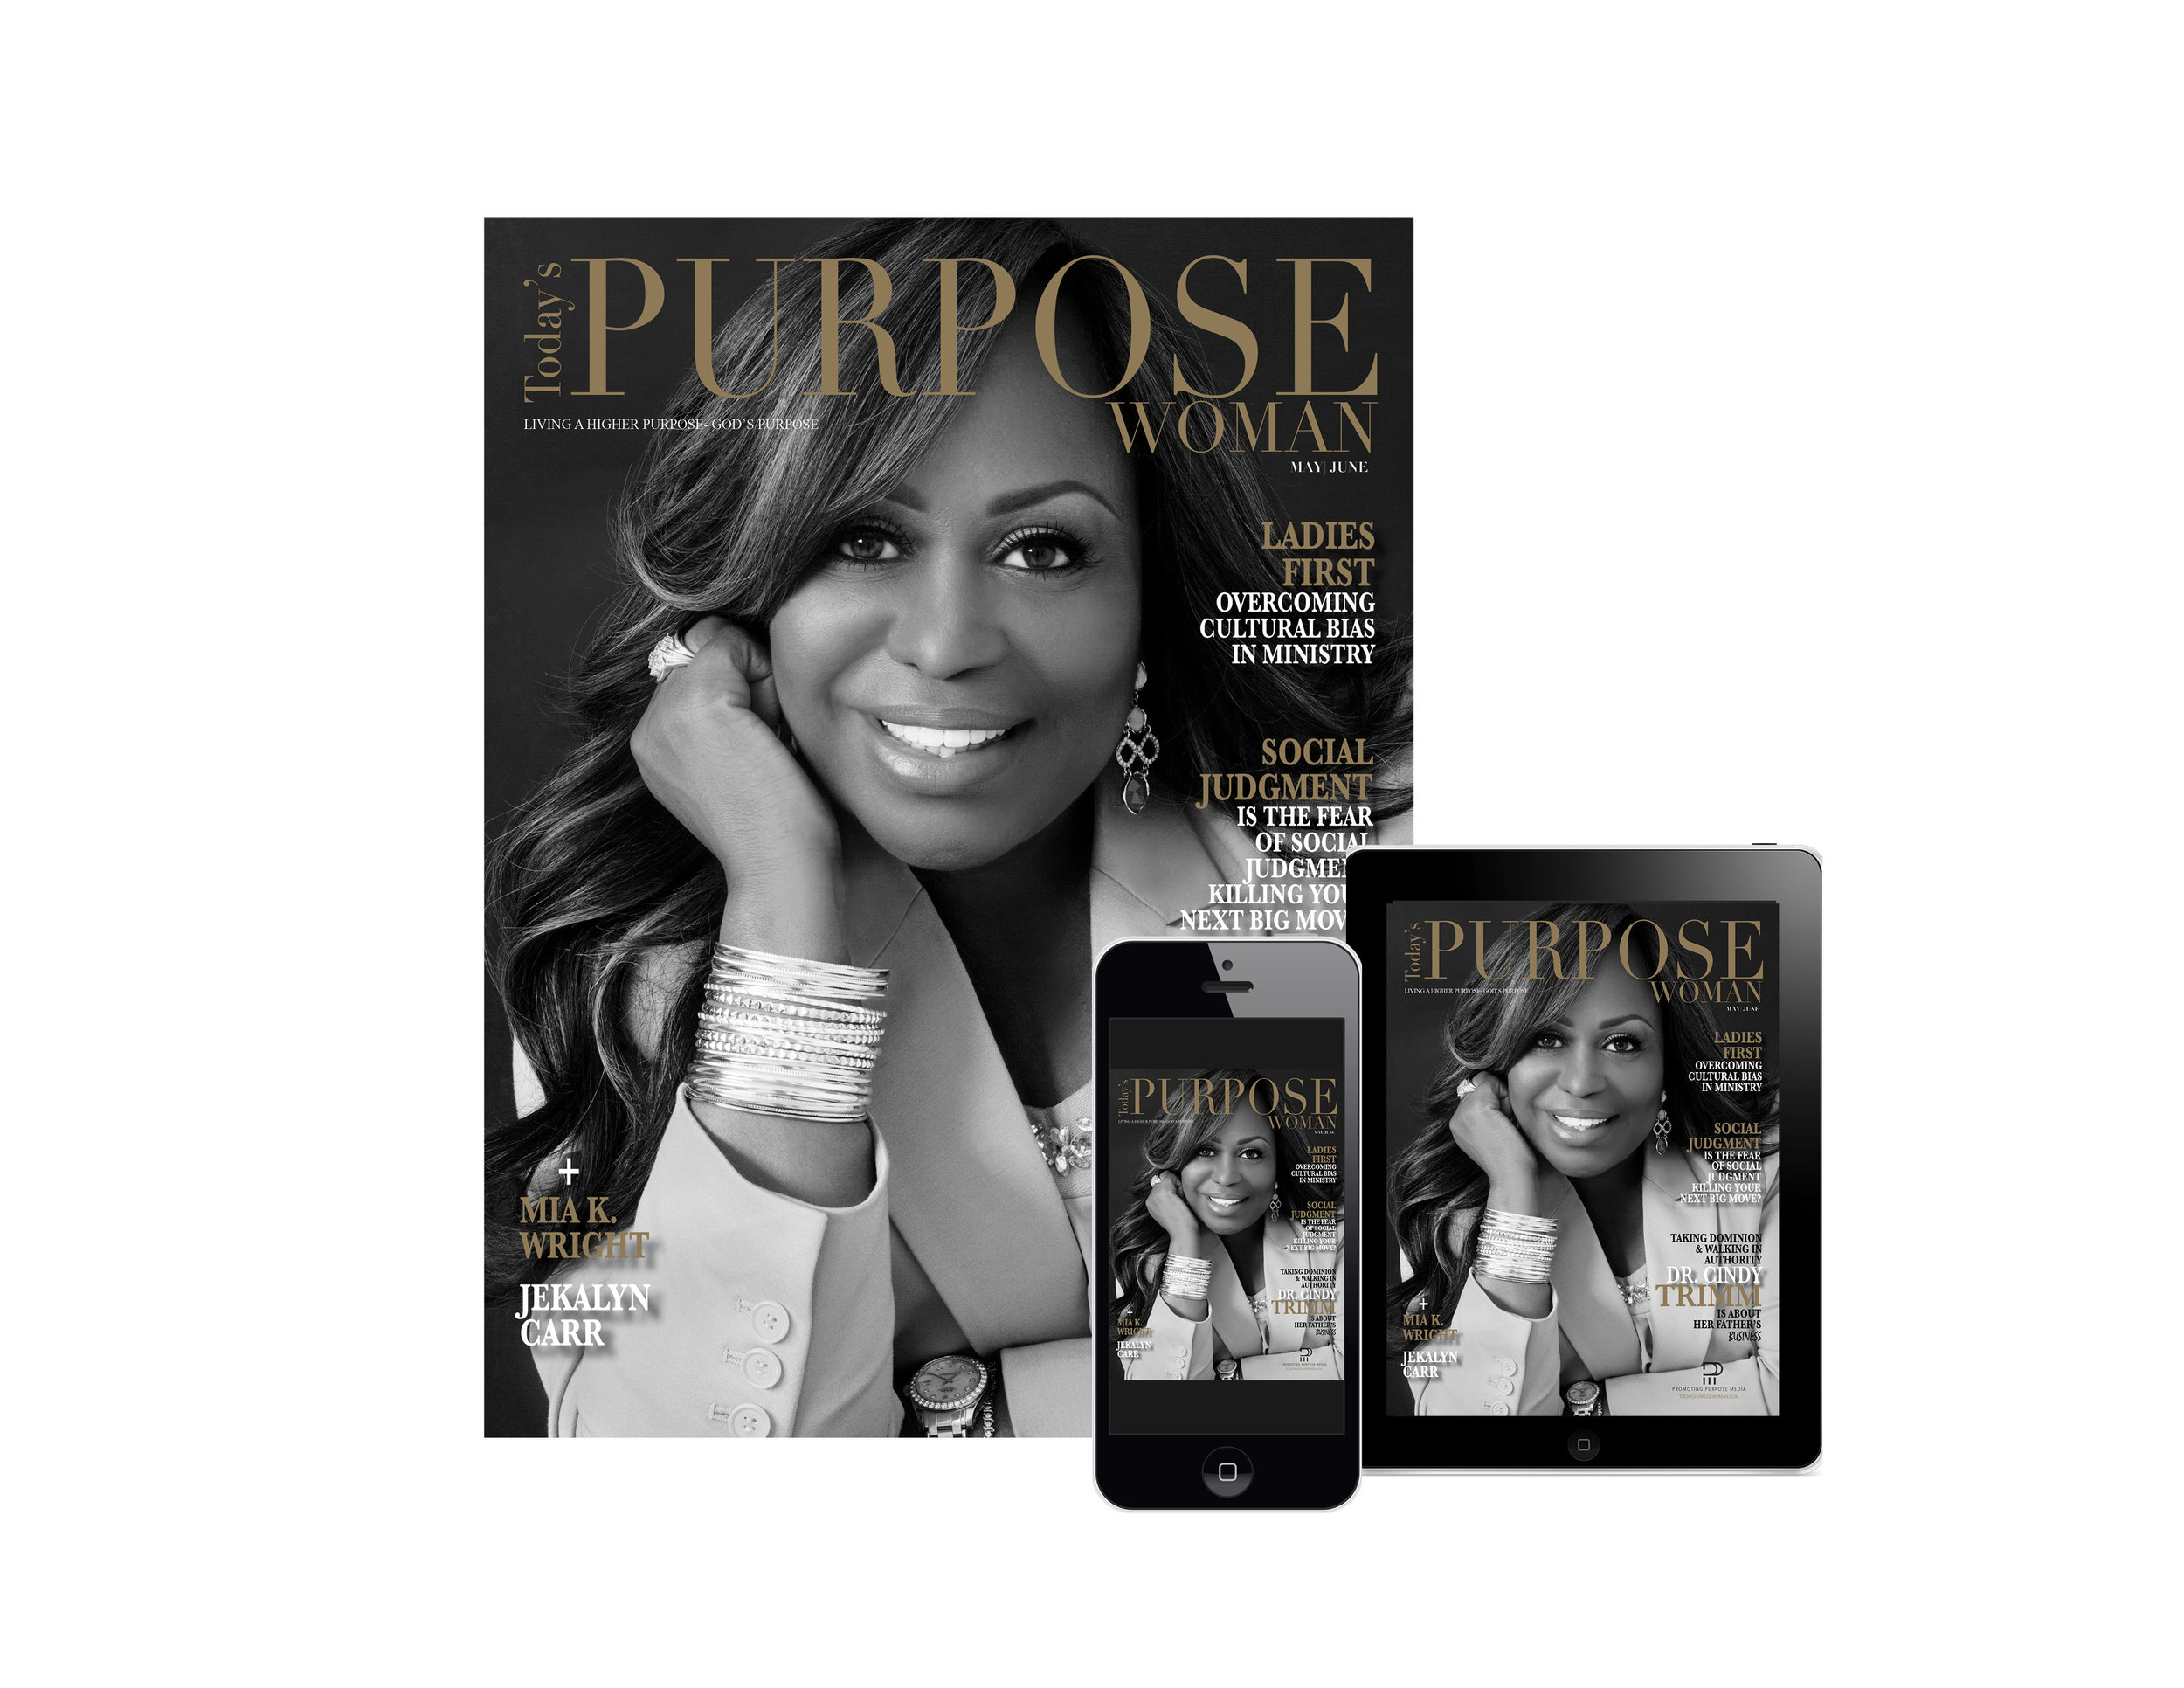 Print Advertising - Print is still alive! Elevate your brand or ministry in Promoting Purpose Media's influential bi-monthly print magazine-Today's Purpose Woman. Readers are purpose-driven women who anticipate each printed issue knowing they will receive inspiration, strategies on living a higher purpose and the opportunity to connect with ministries and purpose-driven brands through professional ads and advertorials.To create a balance between technology and tradition, the print magazine has a digital edition giving readers, brands and ministries the best of both worlds.